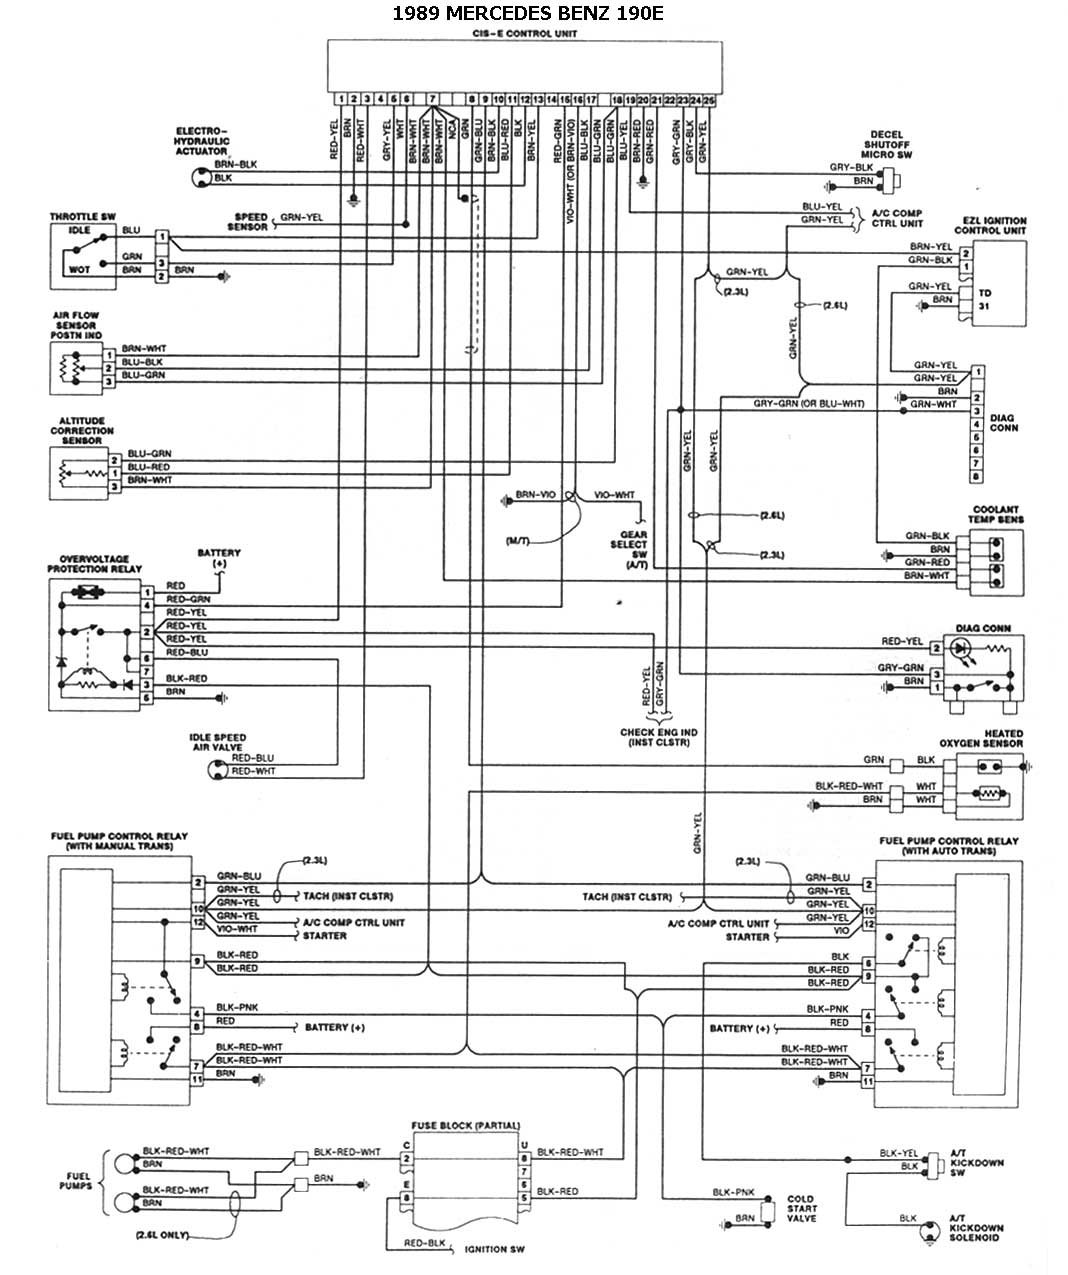 2003 mercedes c230 stereo wiring diagram  mercedes  auto wiring diagram